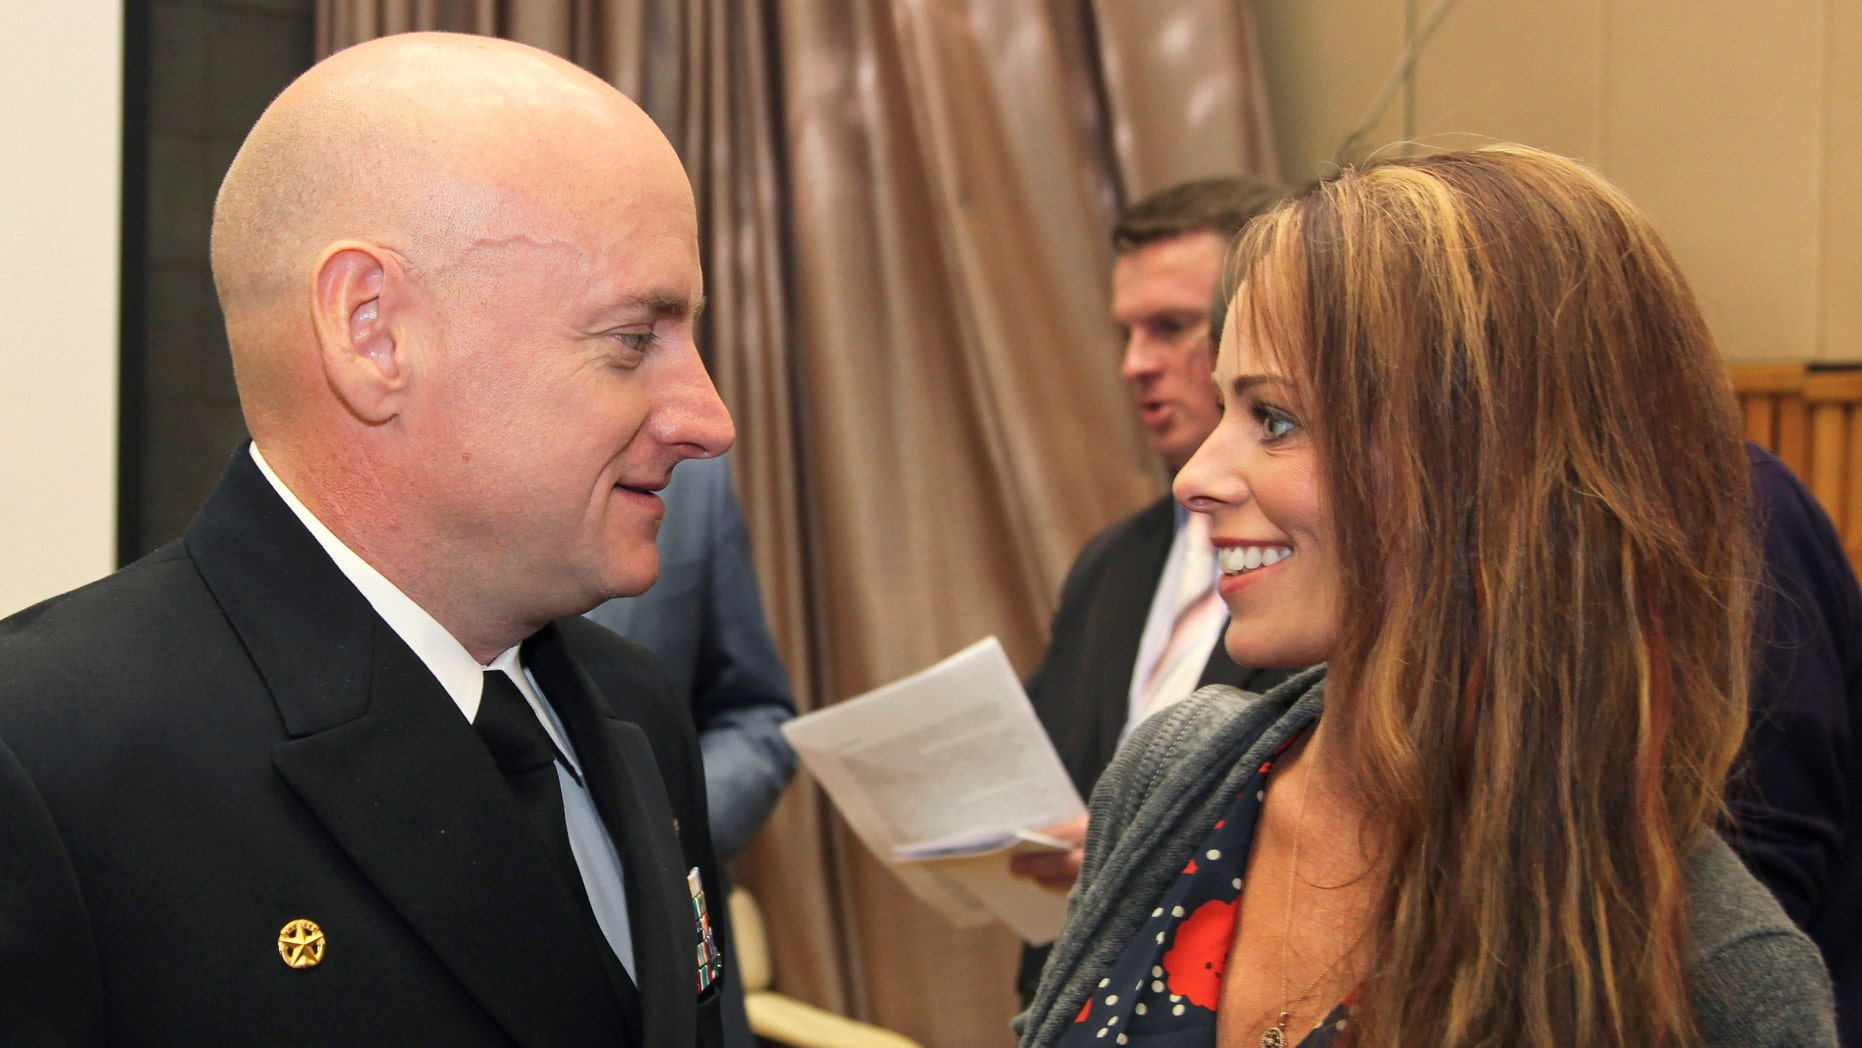 File photo -  Scott Kelly speaks with Amiko Kauderer after a news conference at the Star City space centre outside Moscow, Sept. 17, 2010. (REUTERS/Sergei Remezov)